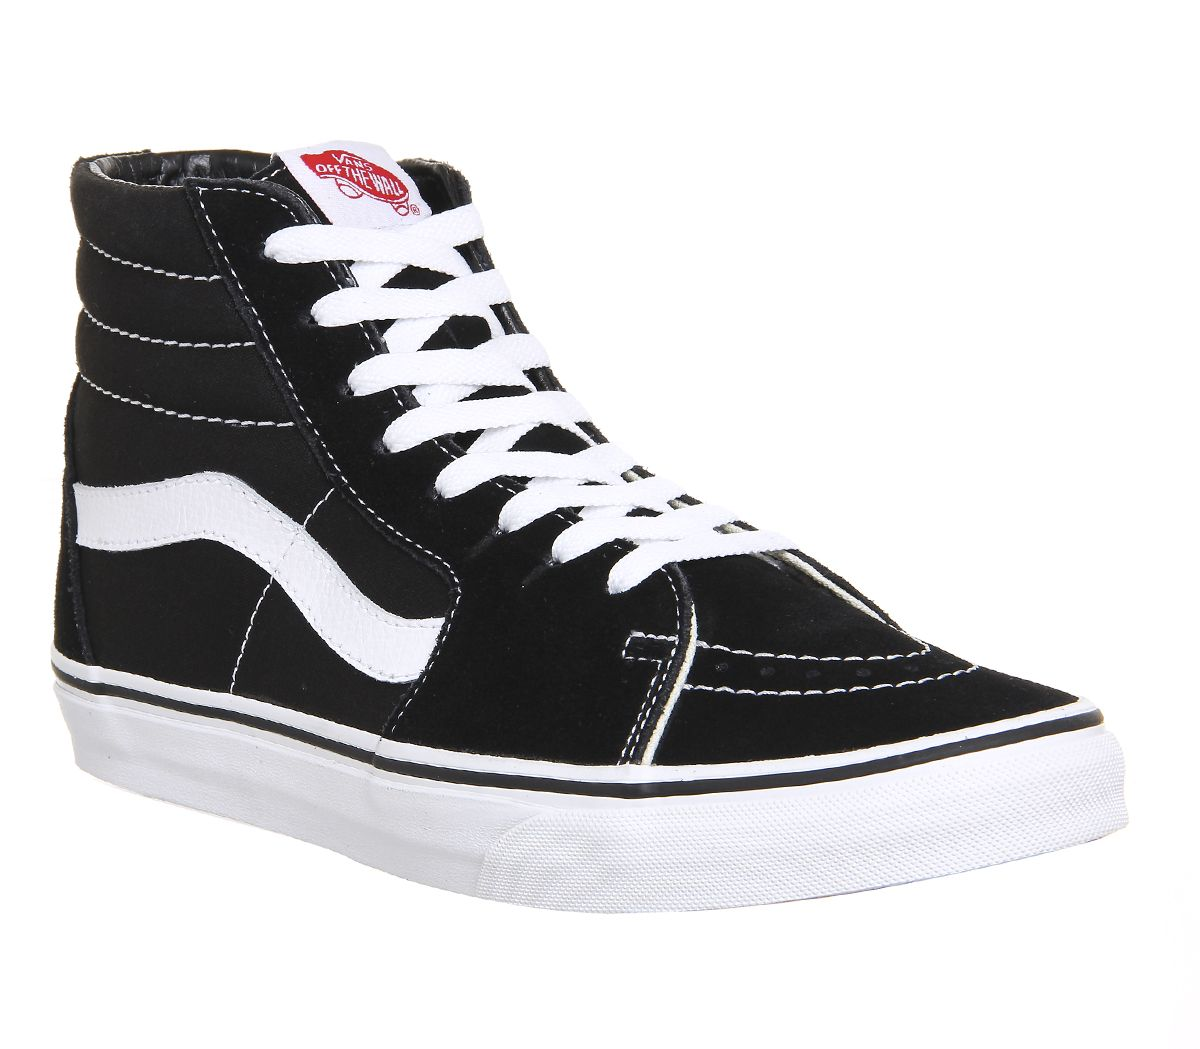 d60885d3161b Vans Sk8 Hi Black White Canvas - Office Girl